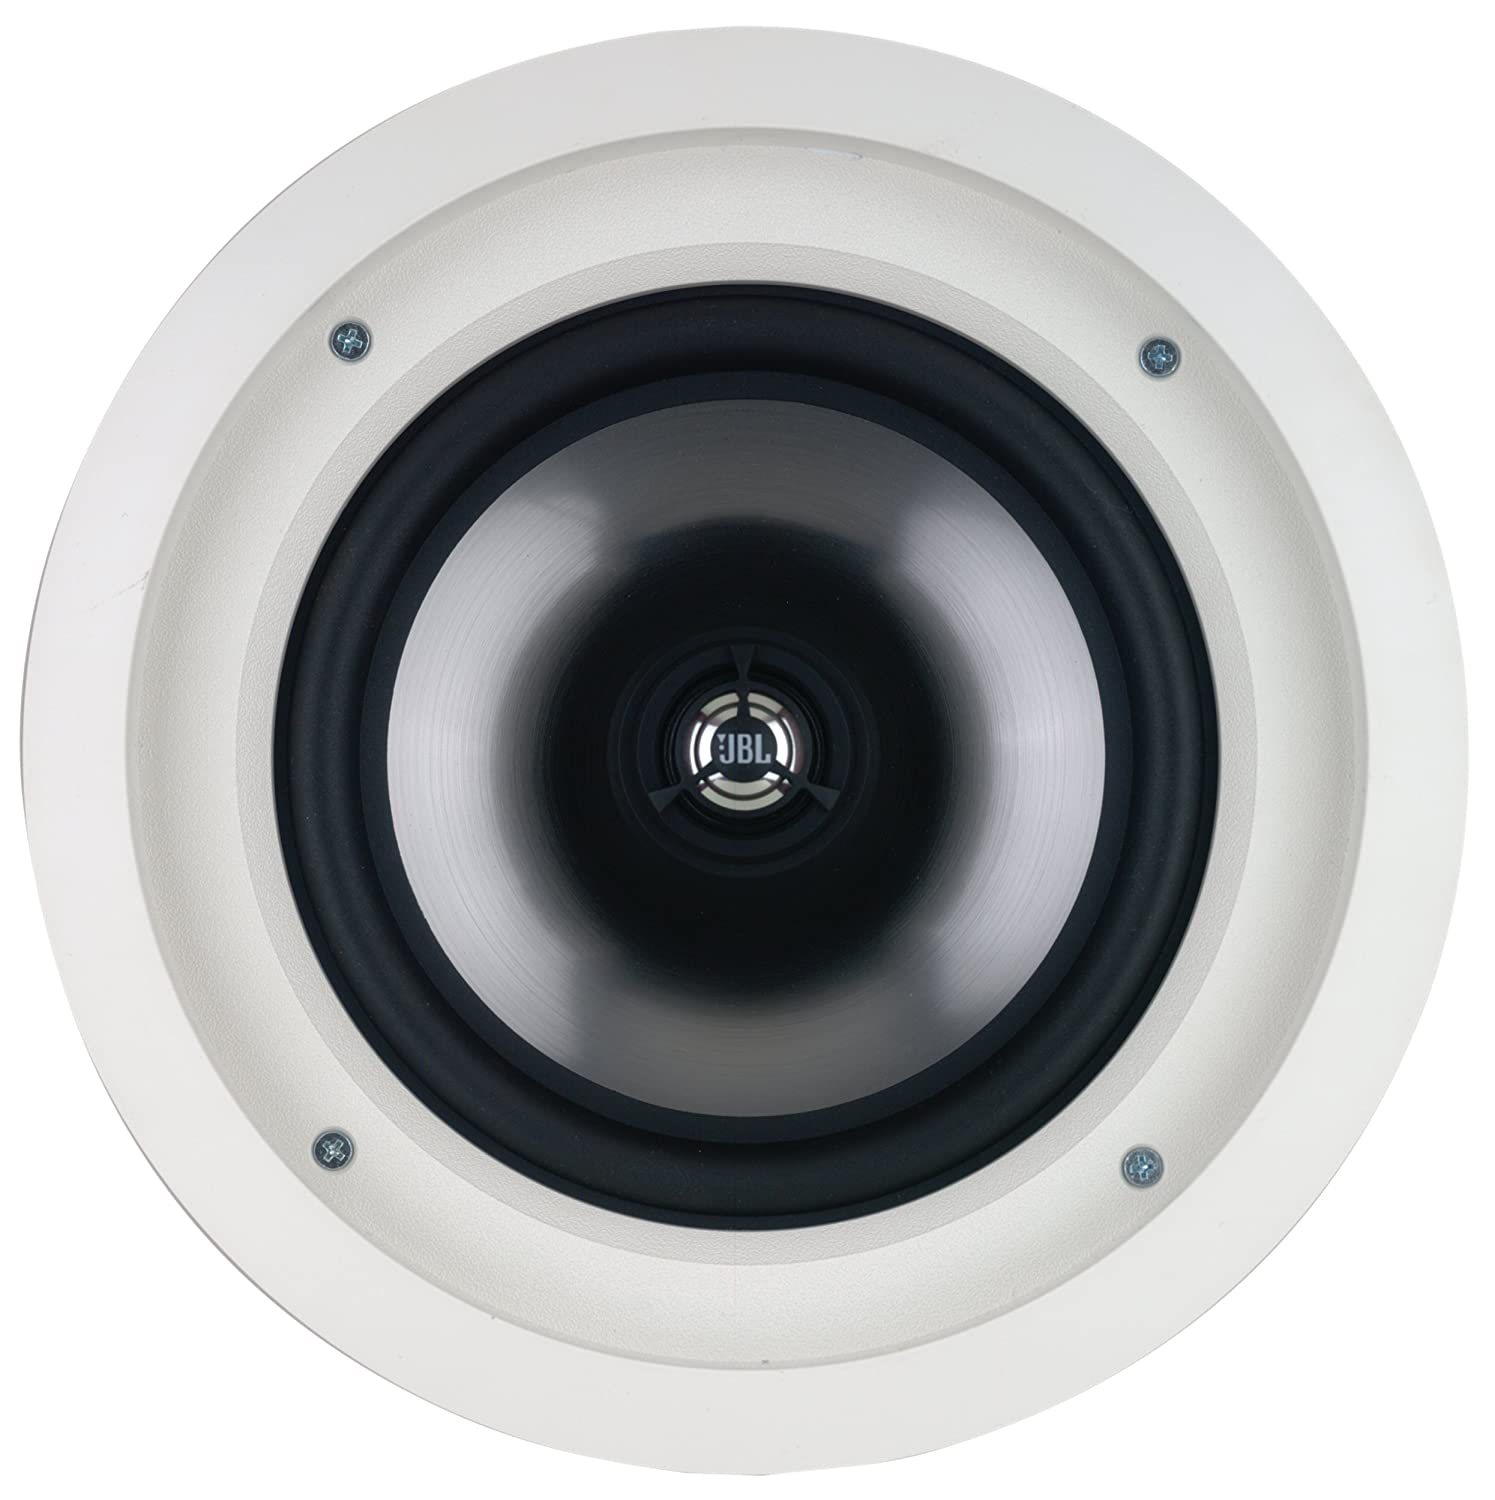 "Leviton 8"" IN-CEILING SPEAKER PAIR PREMIUM, 100WATTS @ 8OHMS ARCHITECTURAL EDITION BY JBL"